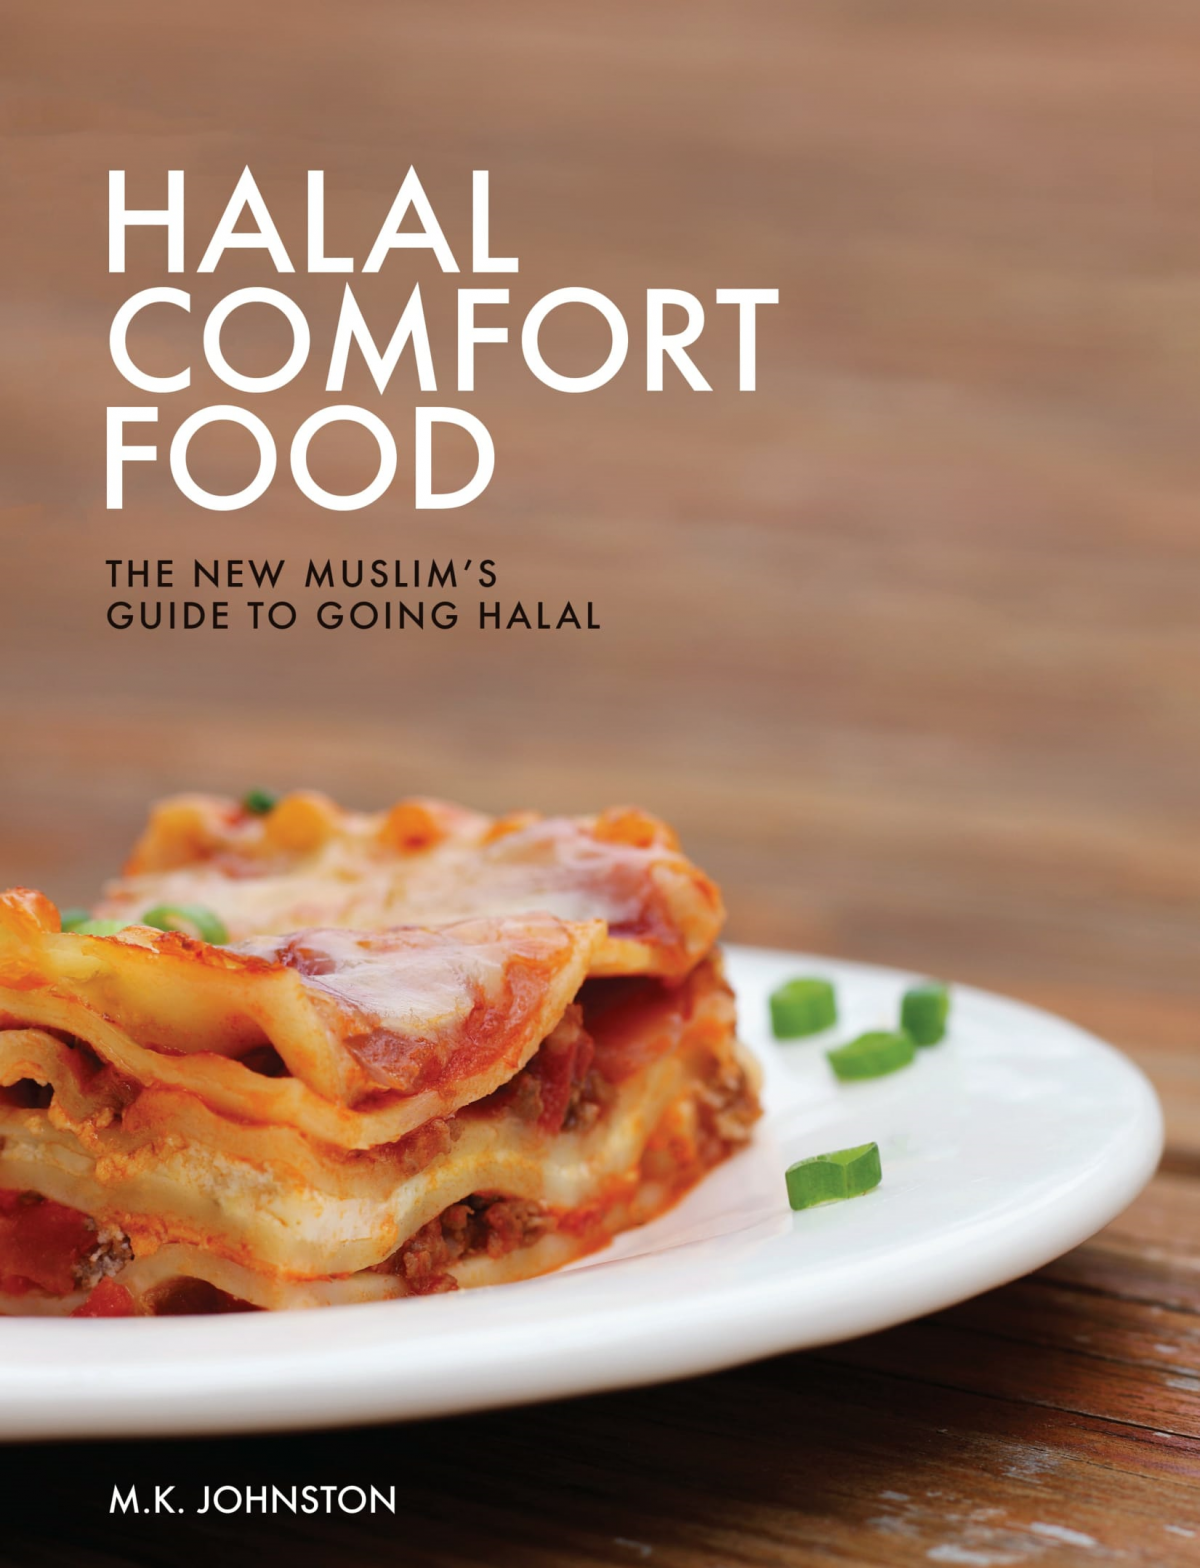 Halal-Comfort-Food-Front-Cover-6-15-17-1200x1568.png